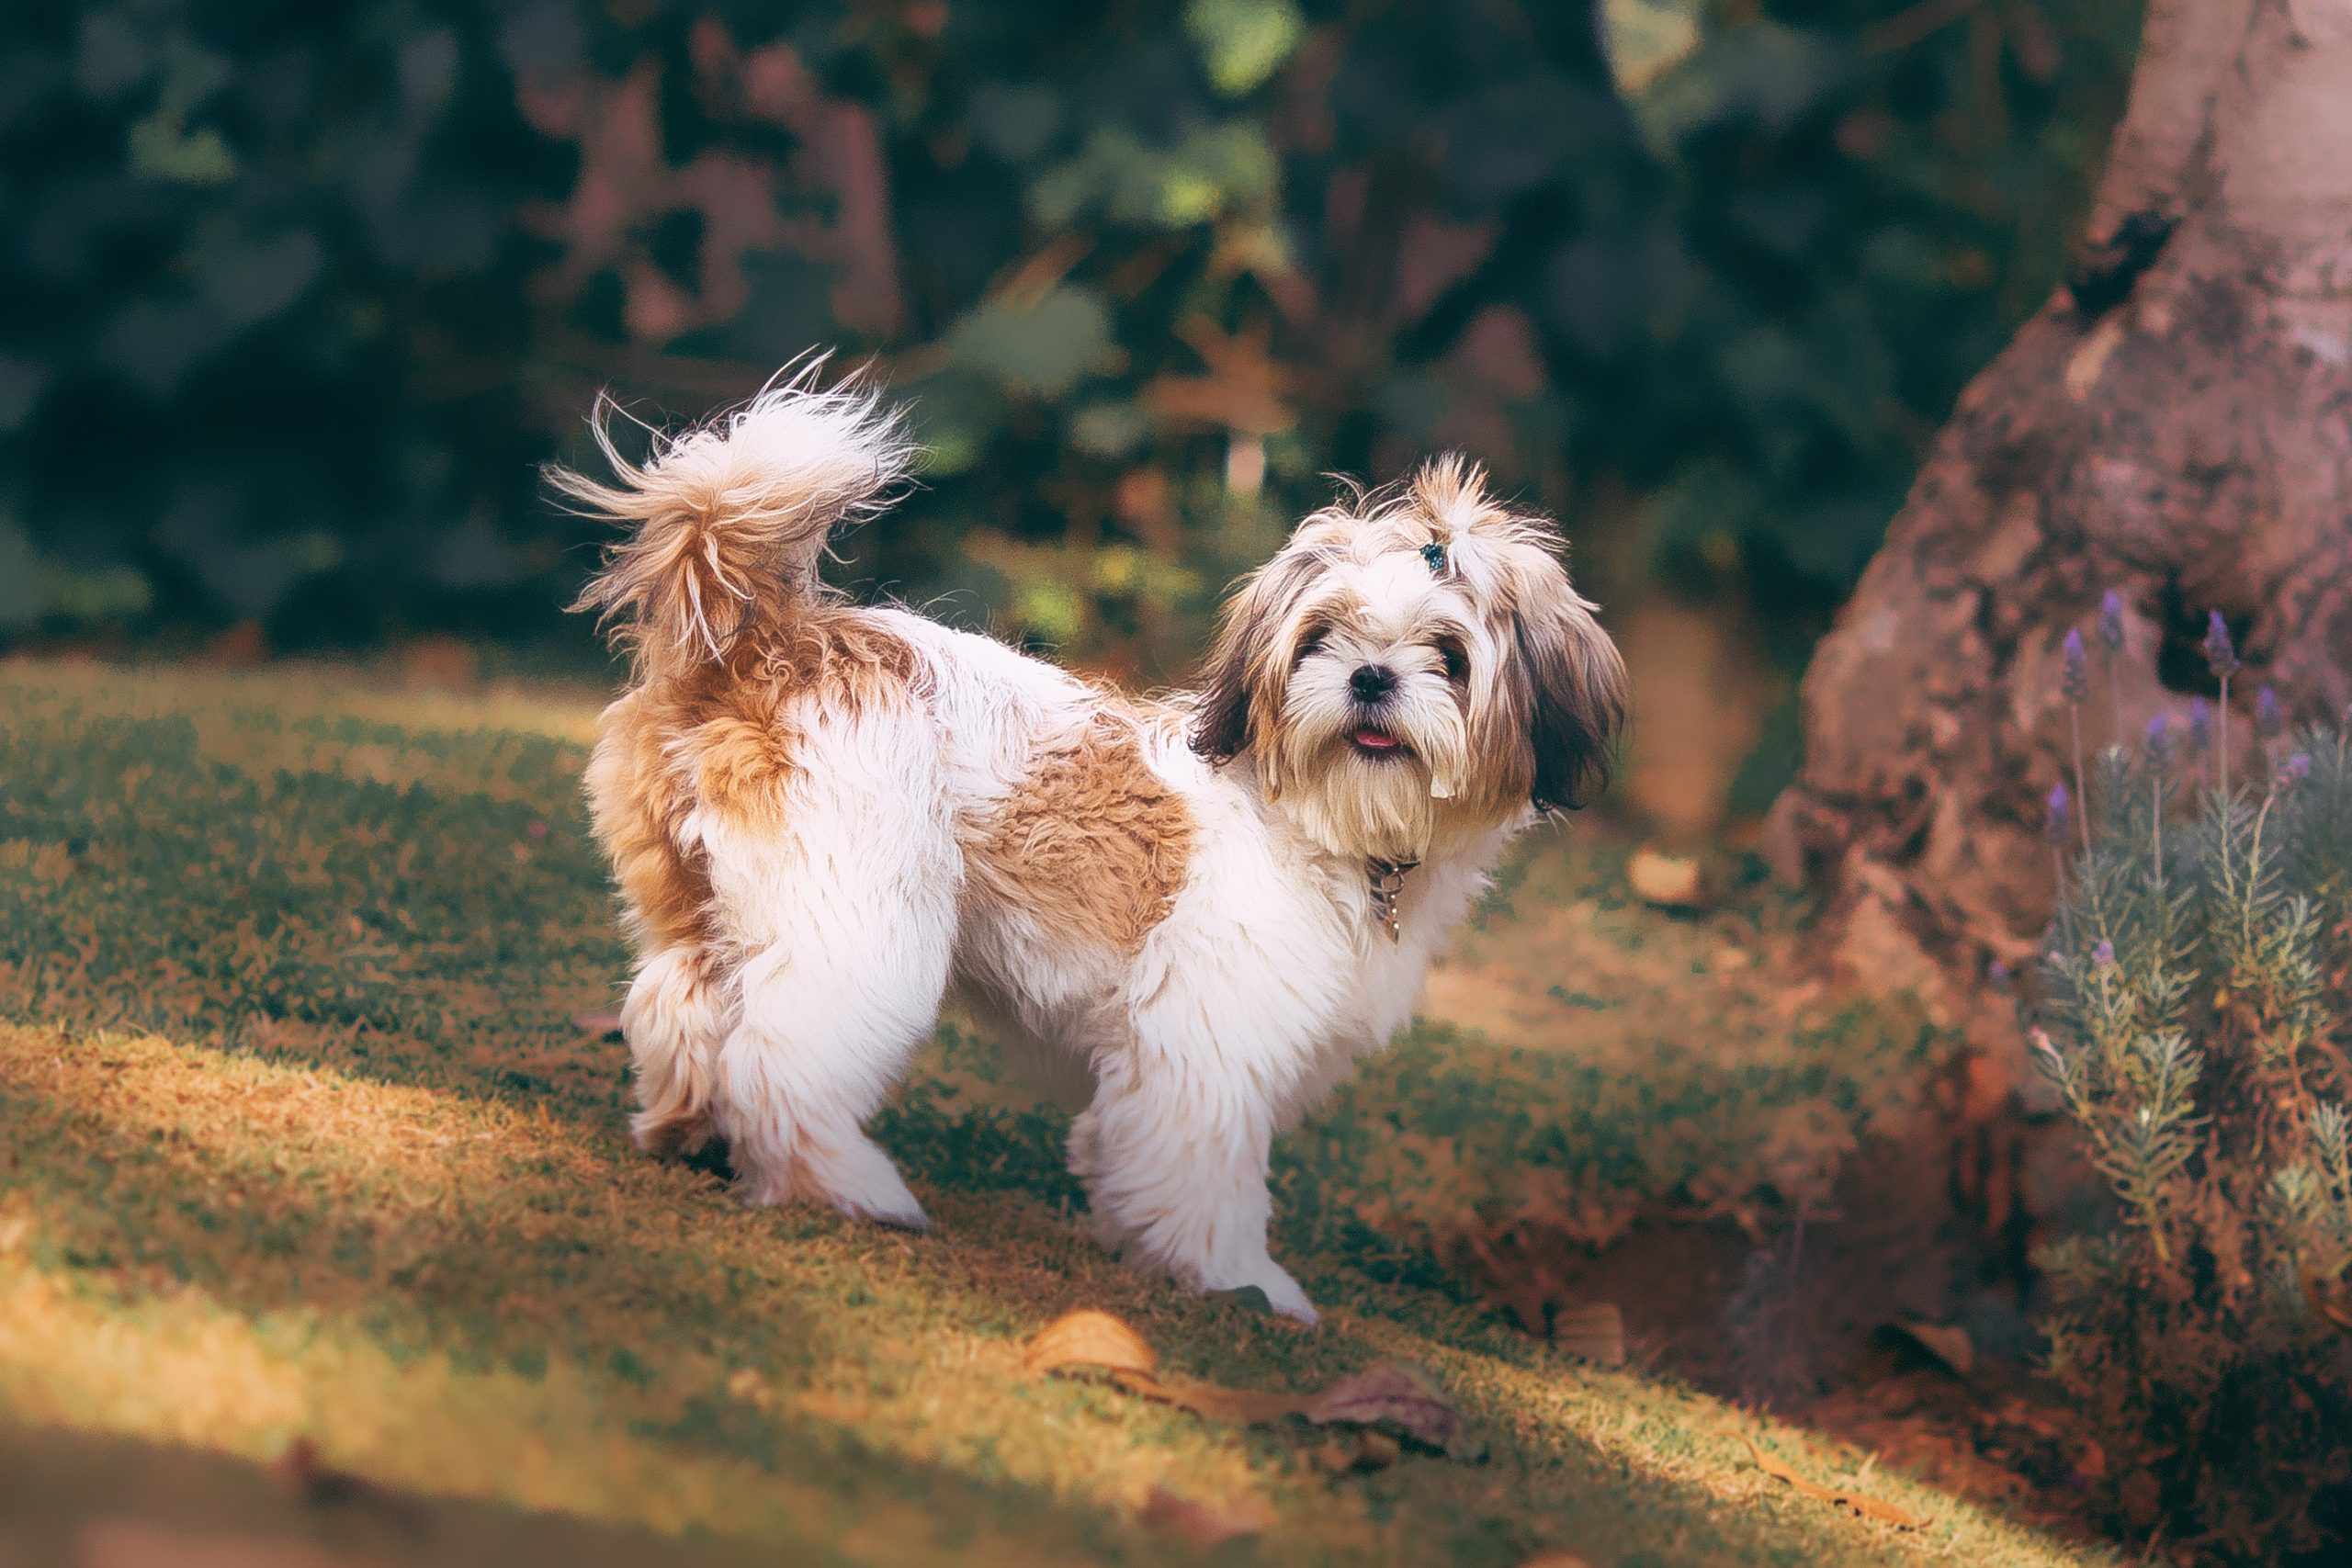 Shih Tzu dog, easiest small dogs to housebreak, photo by Helena Lopes.